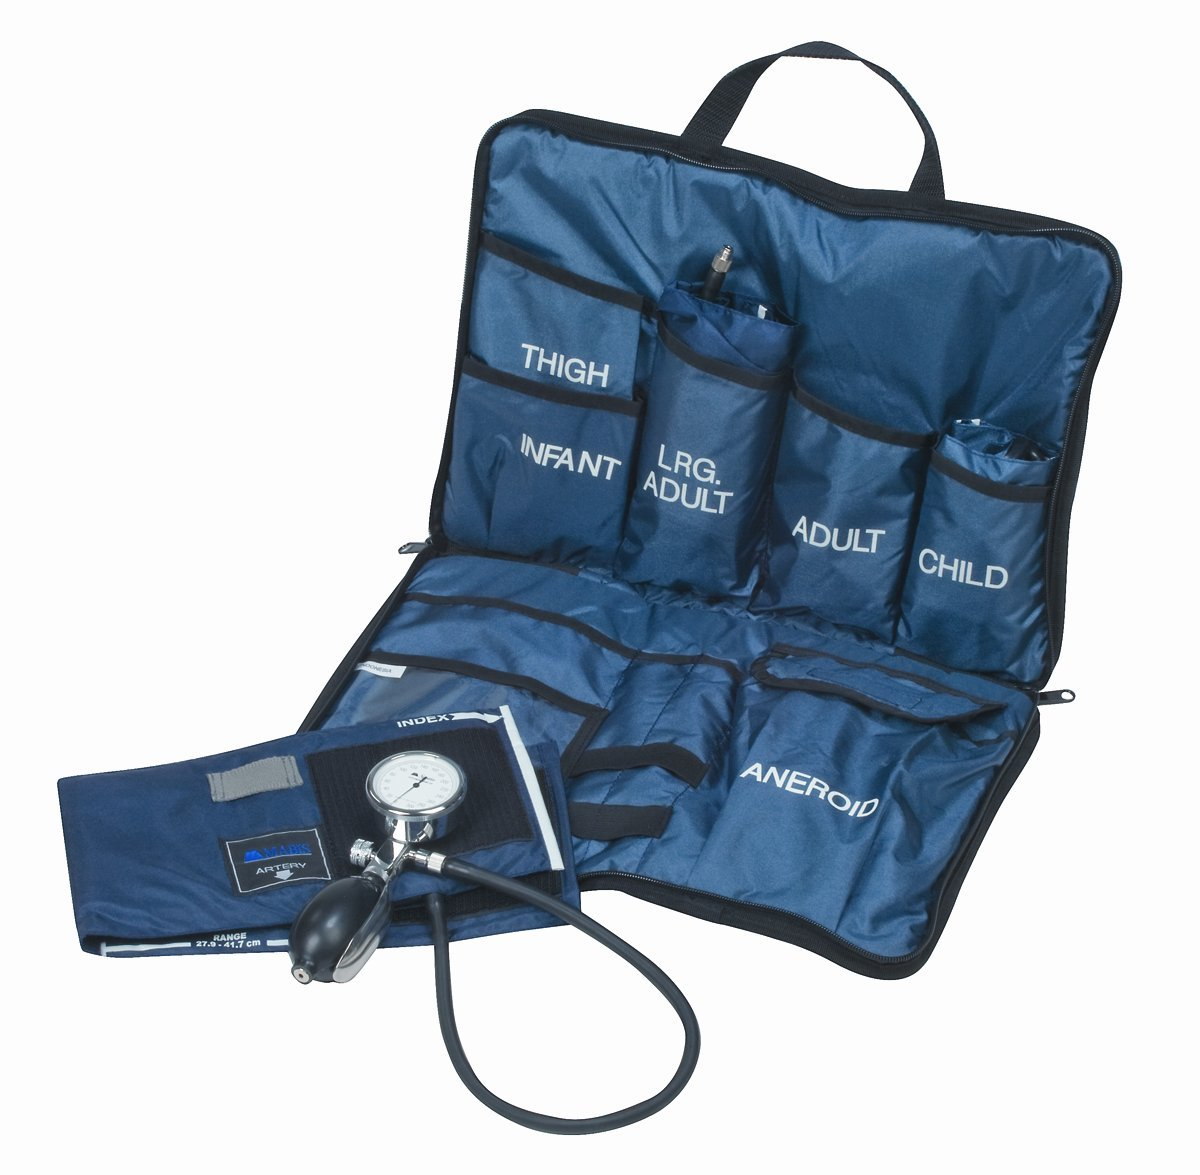 MABIS Medic-Kit3 EMT and Paramedic First Aid Kit with 3 Calibrated Nylon Blood Pressure Cuffs, Blue